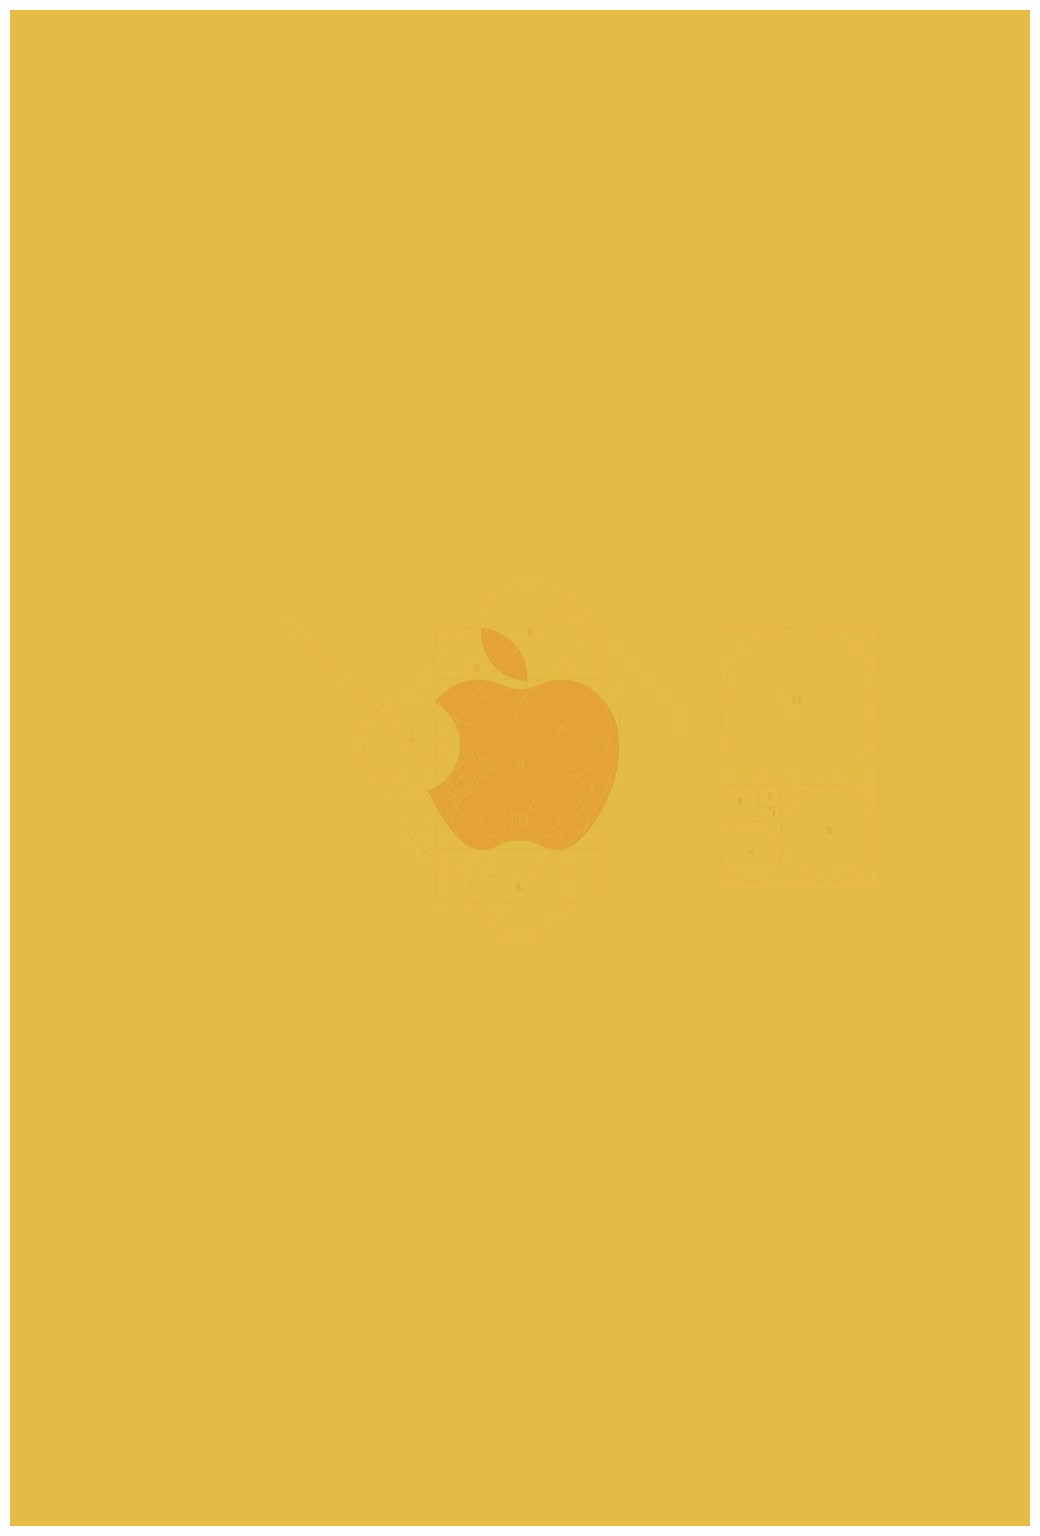 1040x1536 Pastel Yellow Iphone Wallpaper Tumblr - Aesthetic Wallpapers ...